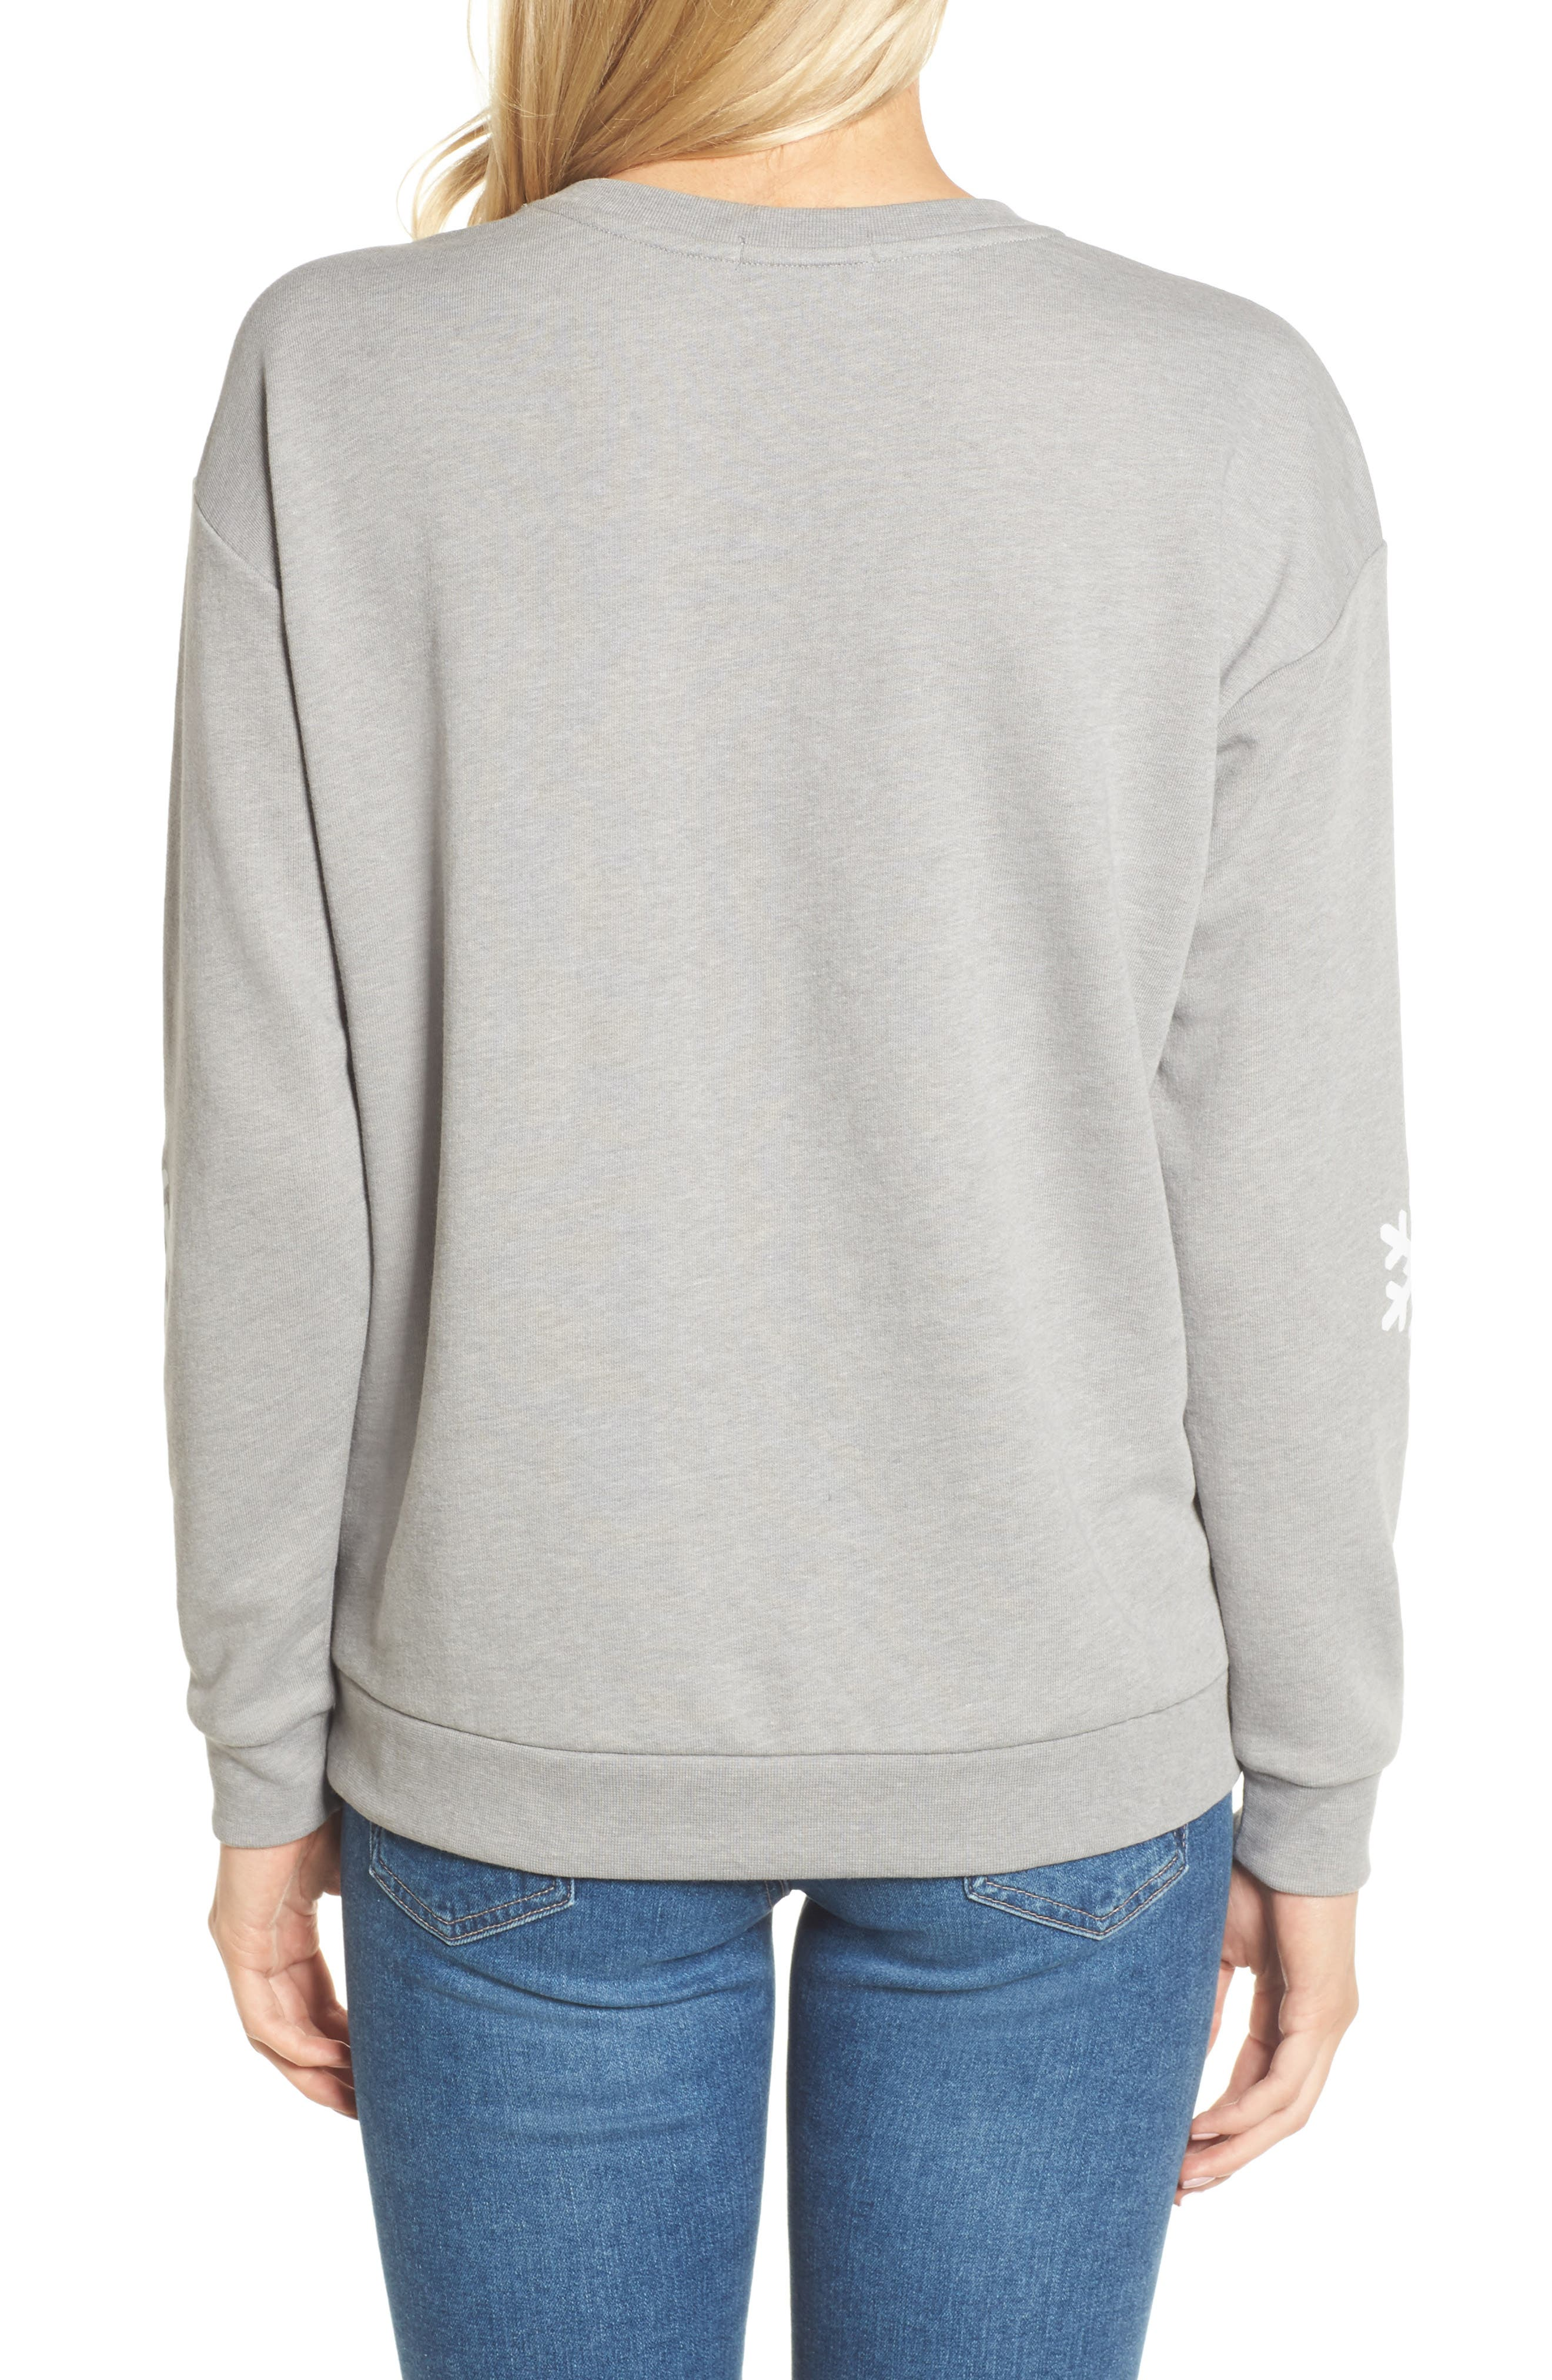 Alternate Image 2  - South Parade Baby It's Cold Outside Sweatshirt